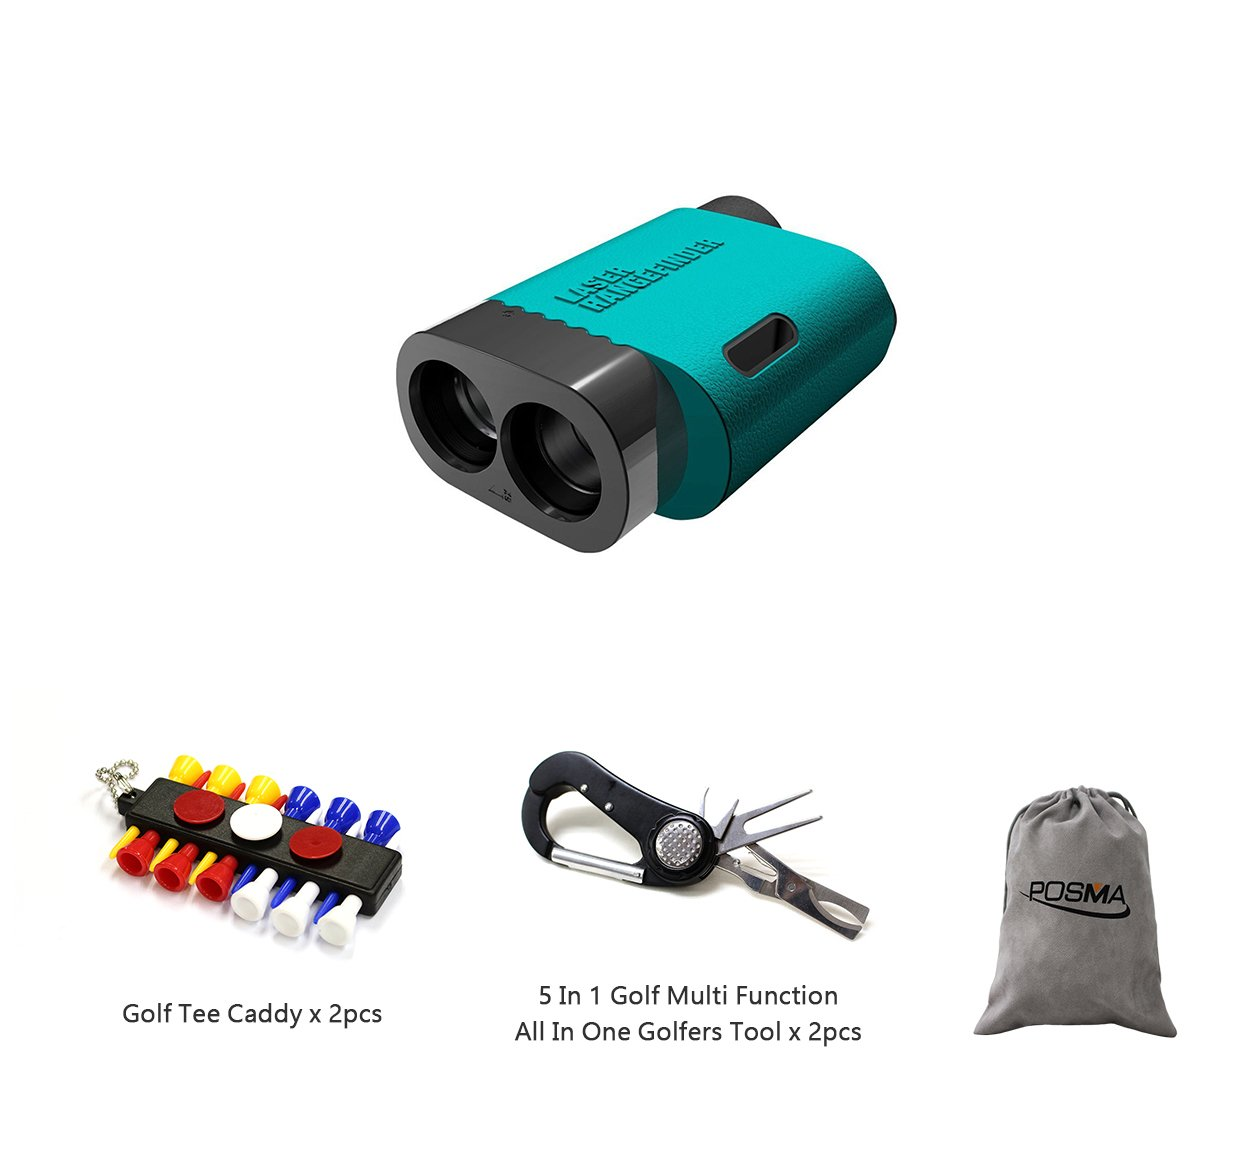 POSMA GF300D New Golf Rangefinder Bundle Set With 2pcs tee caddy + 2pcs 5 In 1 Golf Multi Function All In One Golfers Tool + 1pc Flannel Storage Bag by POSMA (Image #1)